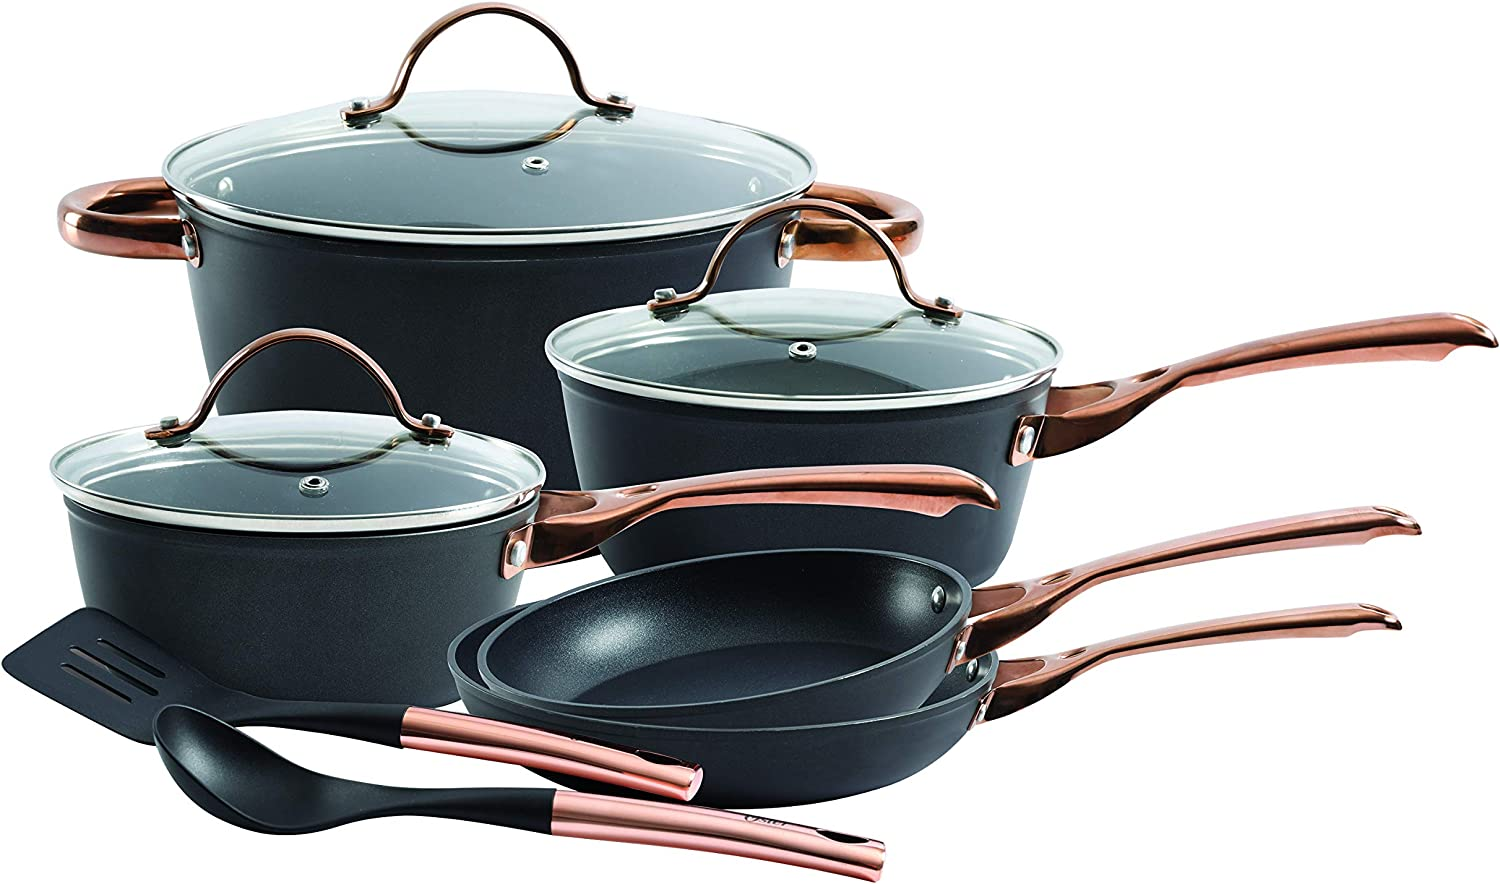 Oster Allsberg Forged Aluminum Non-Stick Titanium Ceramic Cookware with Induction Base and Copper PVD Plated Stainless Steel Handles, 10-Piece Set, Matte Black